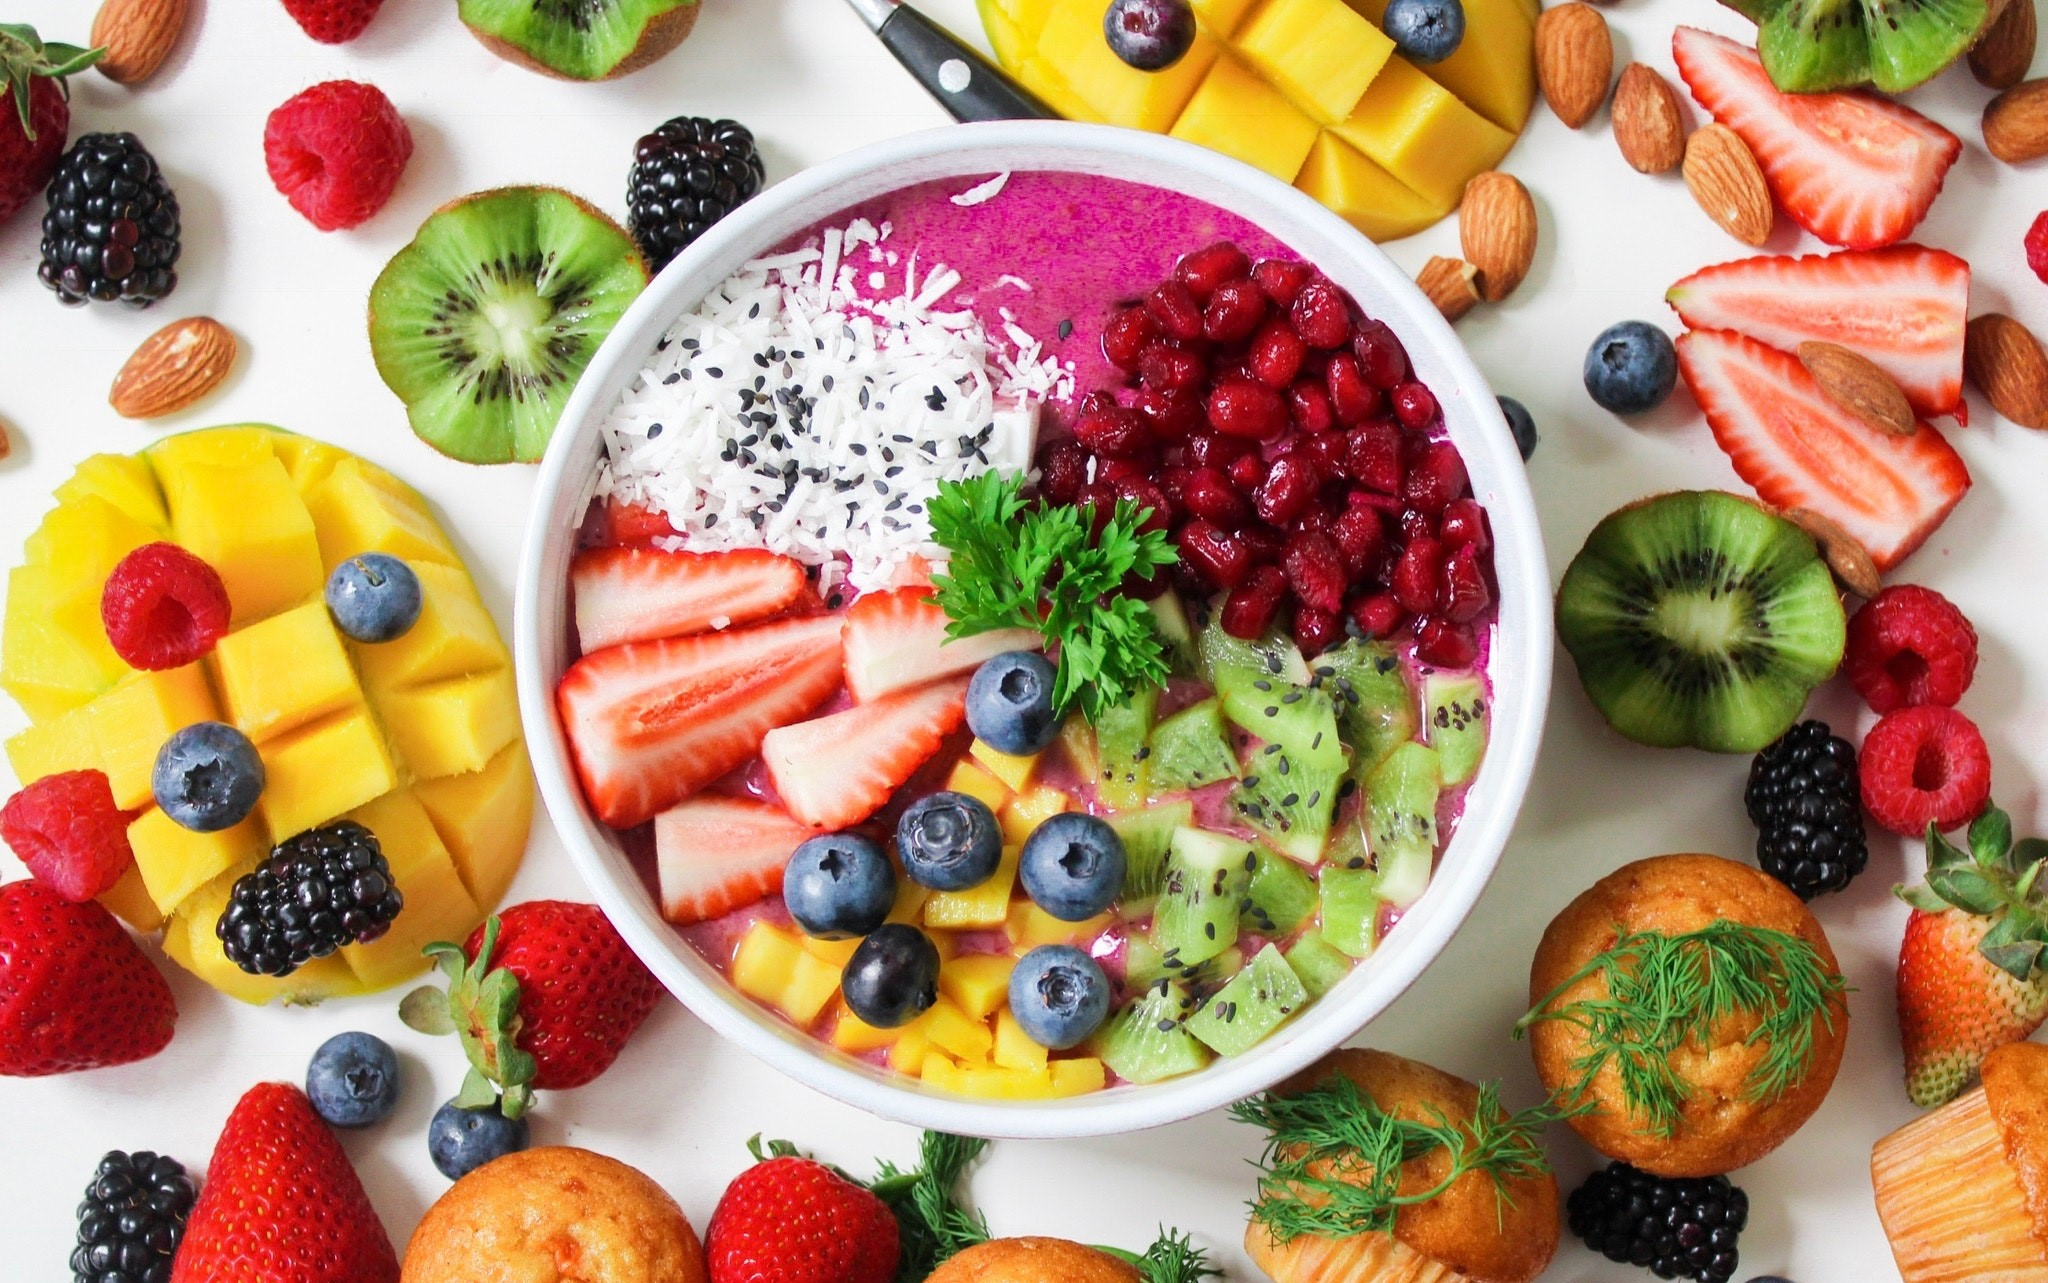 Pressure for healthier and more natural fat-based foods (underPRESSURE)